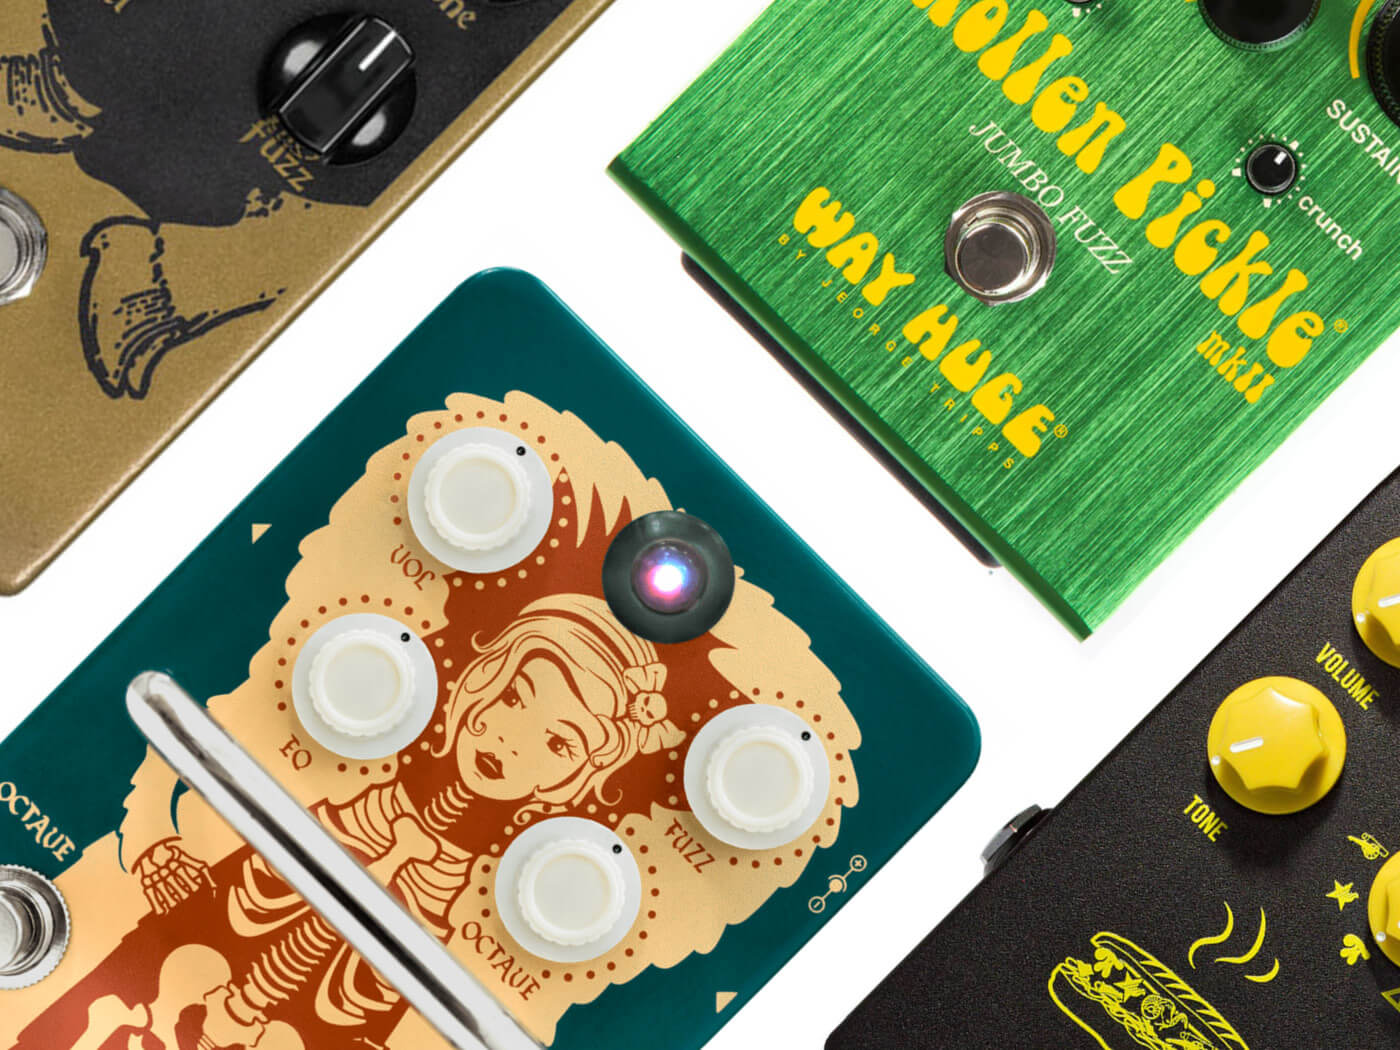 20 best fuzz pedals for guitarists in 2019